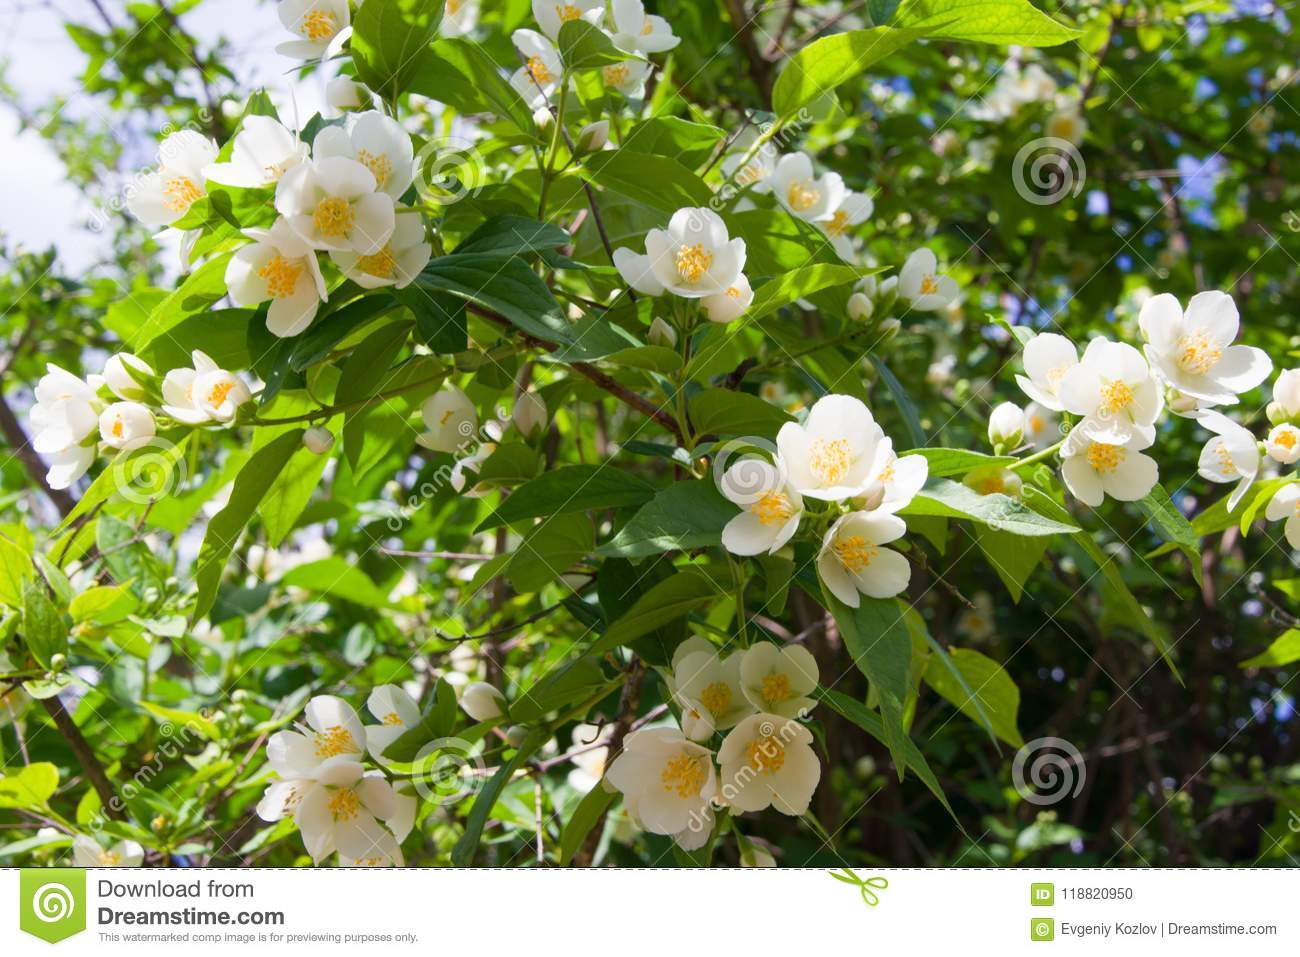 Closeup view of the white flowers of philadelphus on the bushes closeup view of the white flowers of philadelphus on the bushes mightylinksfo